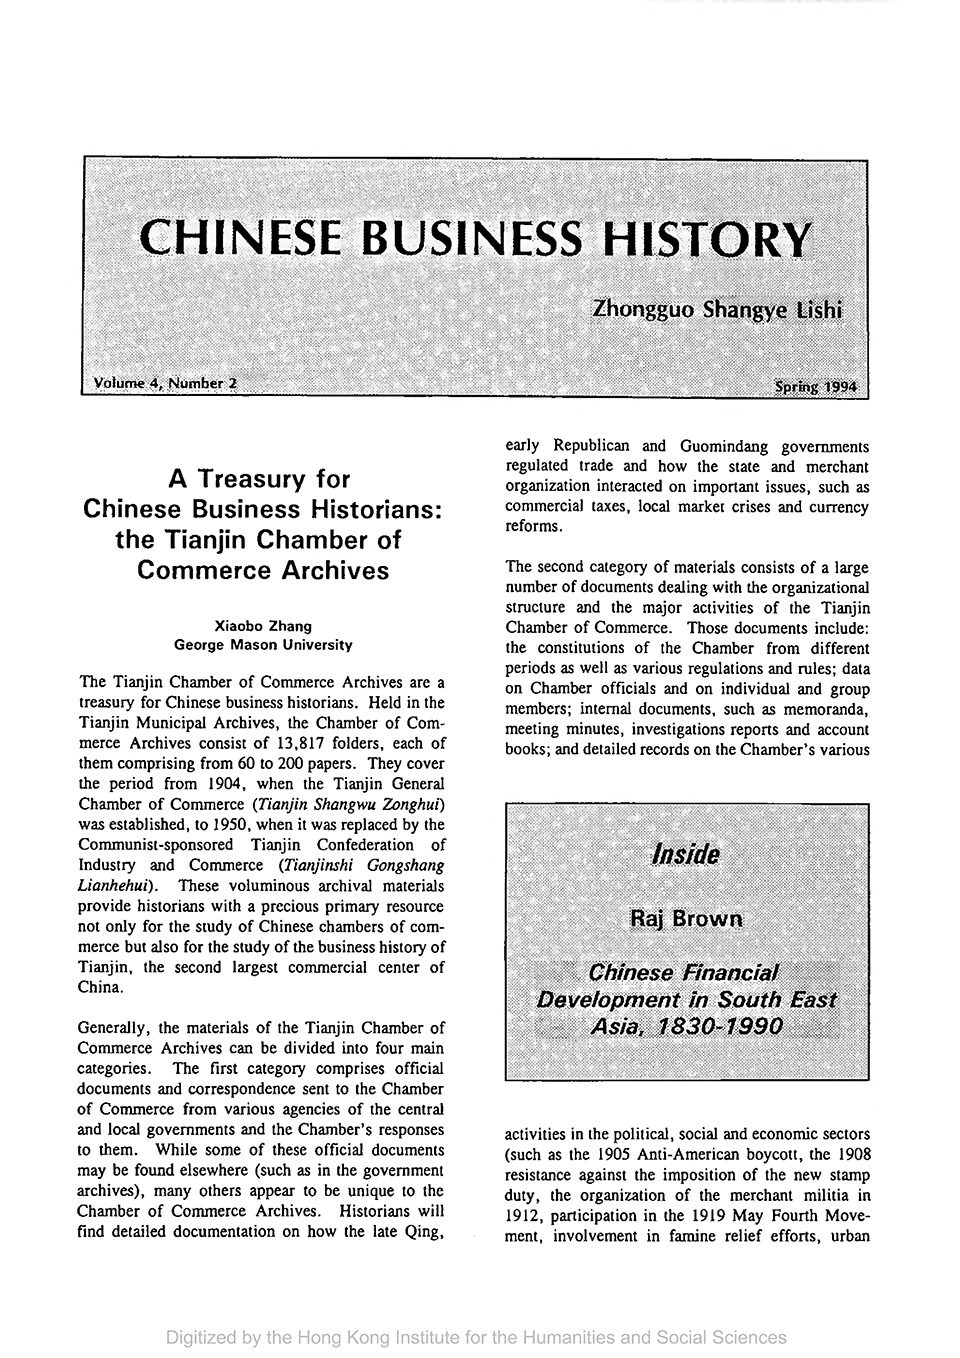 Cover of Chinese Business History Journal Volume 4, Number 2